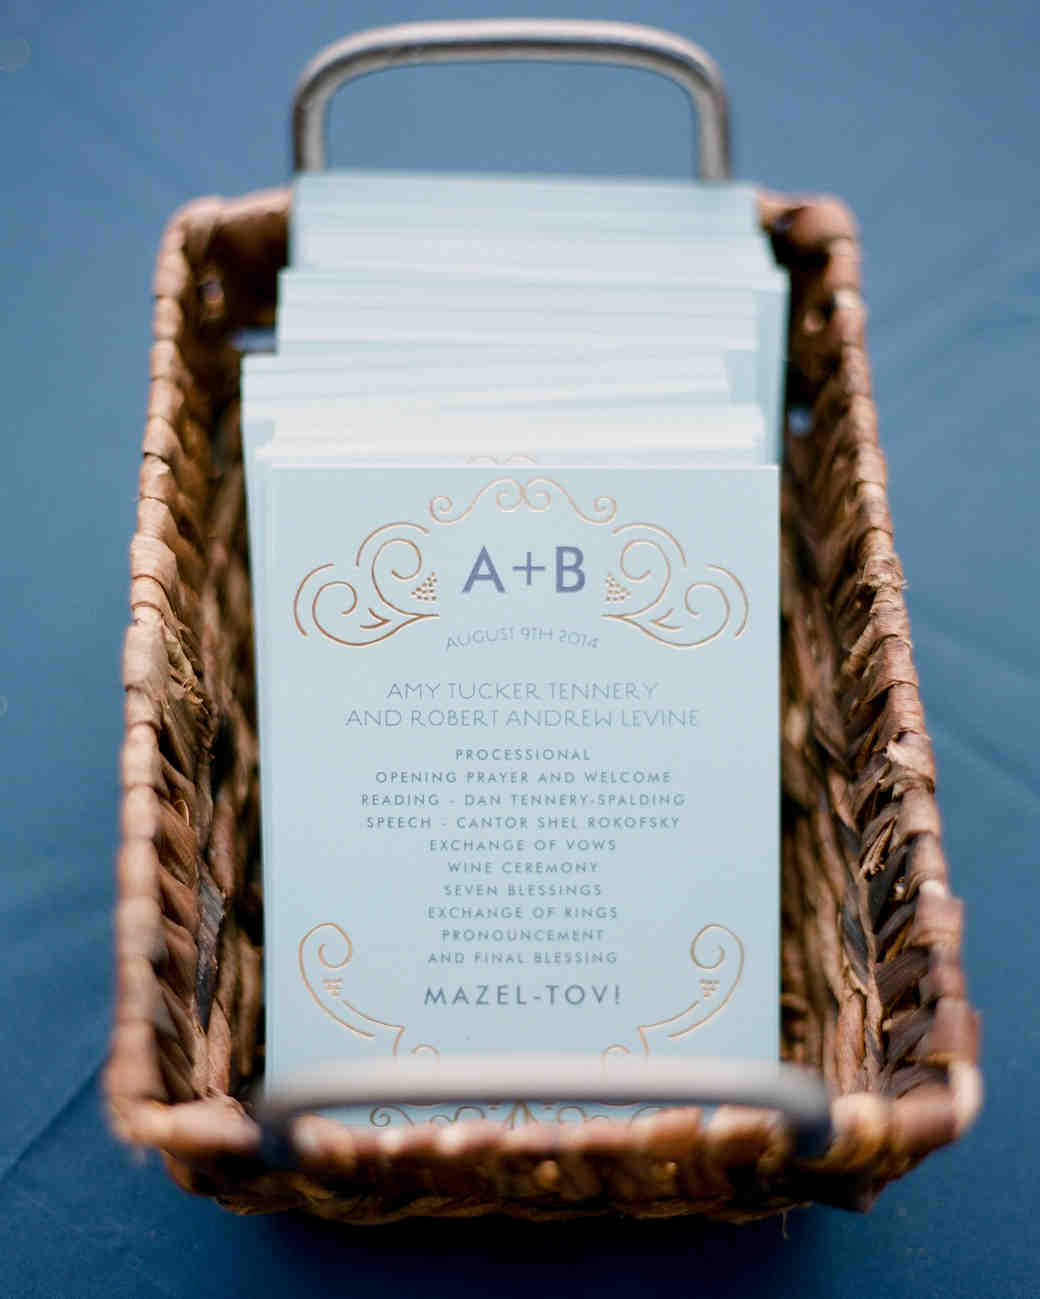 44 Perfect Wedding Ceremony Programs